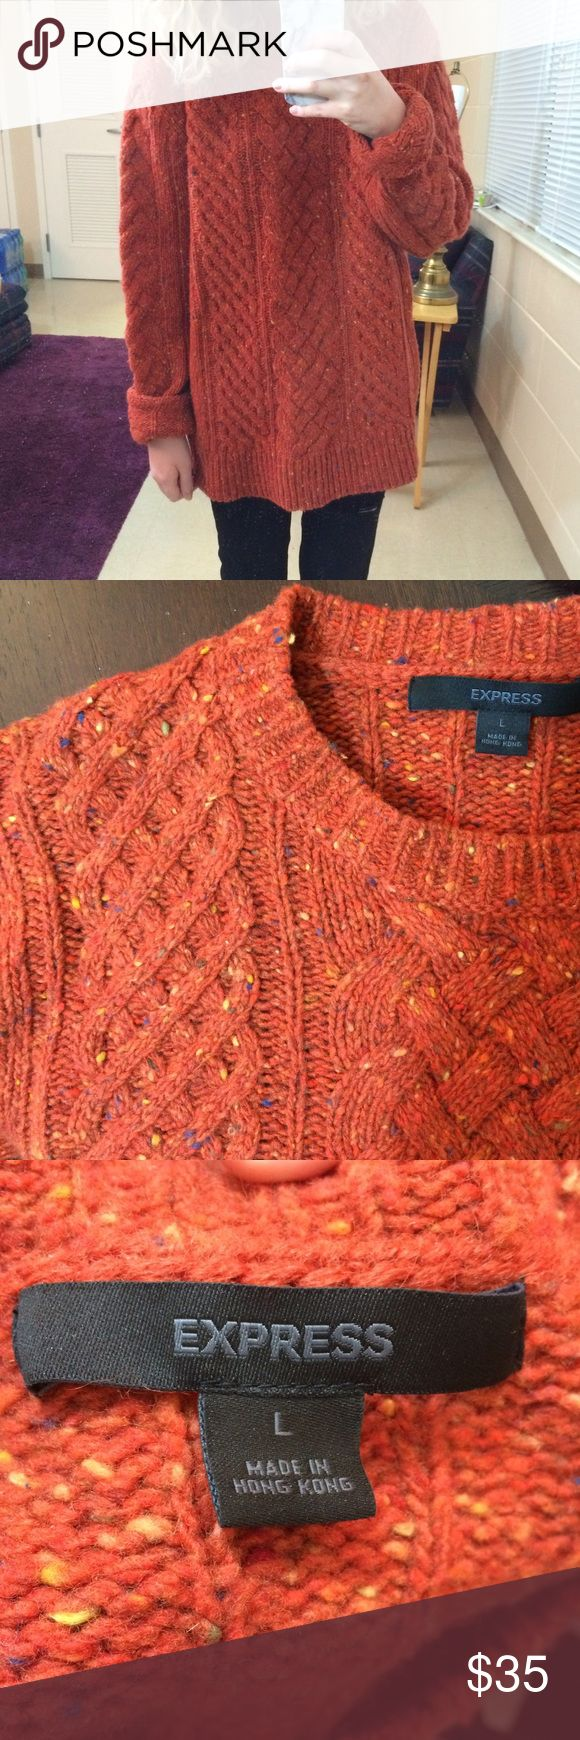 Speckled Orange Oversized Sweater The most amazing rust speckled sweater 😍😍 love it but a bit too oversized for me. It's a size large but fits pretty oversized. I'm a medium and 5.4 for reference. It's a tad itchy but I wore a long sleeve undershirt underneath and it was fine. It's very warm and thick. 80% wool and 20% nylon. Open to offers and 30% off bundles! Express Sweaters